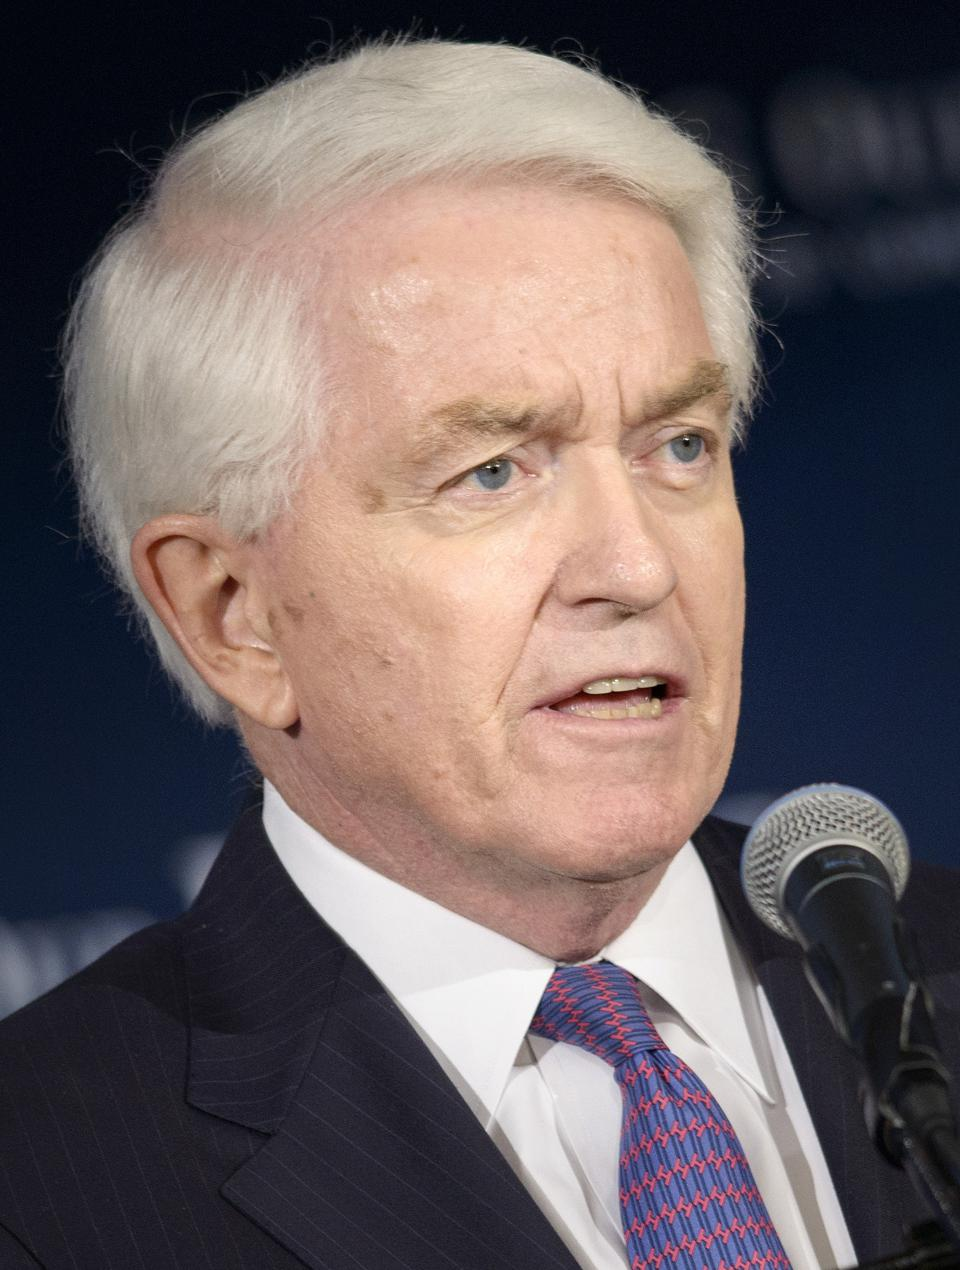 Picture of THomas Donohue, a grey haired man who is President of the U.S> Chamber of Commerce.